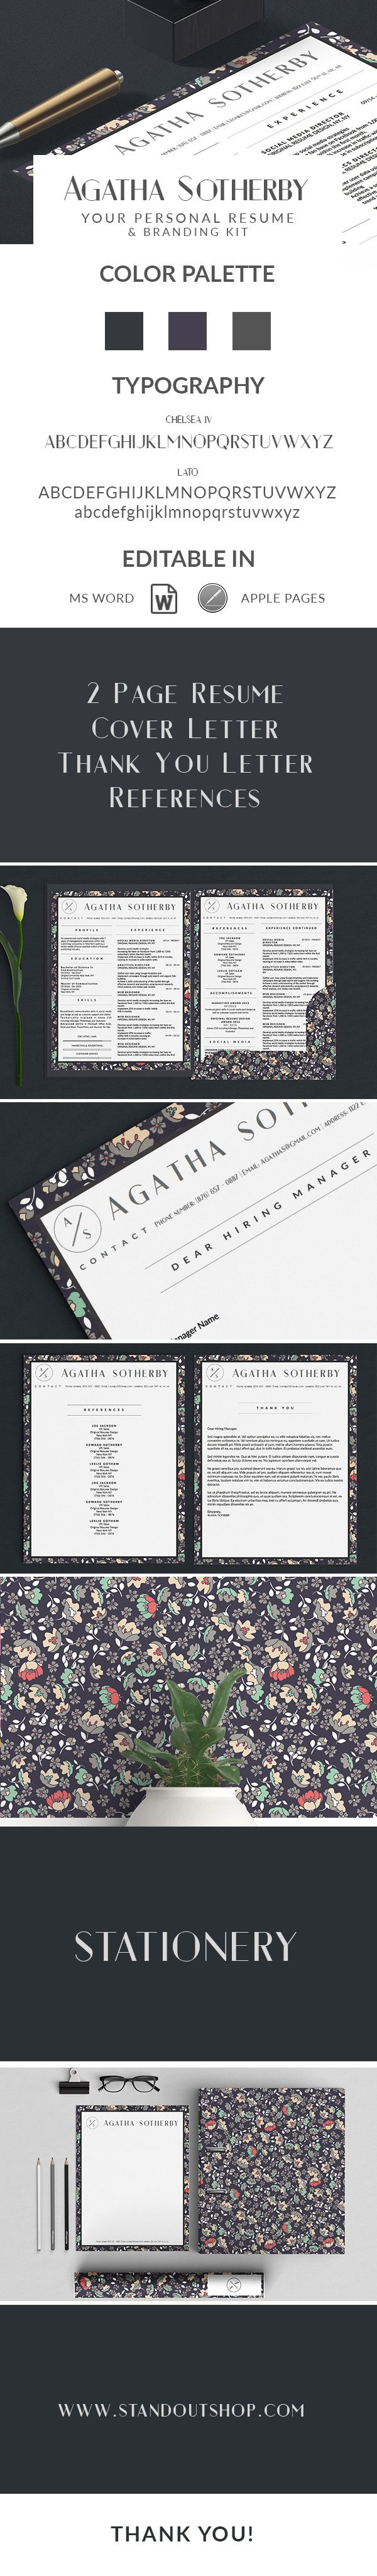 Best Agatha Sotherby Resume Template Images By Stand Out Shop On